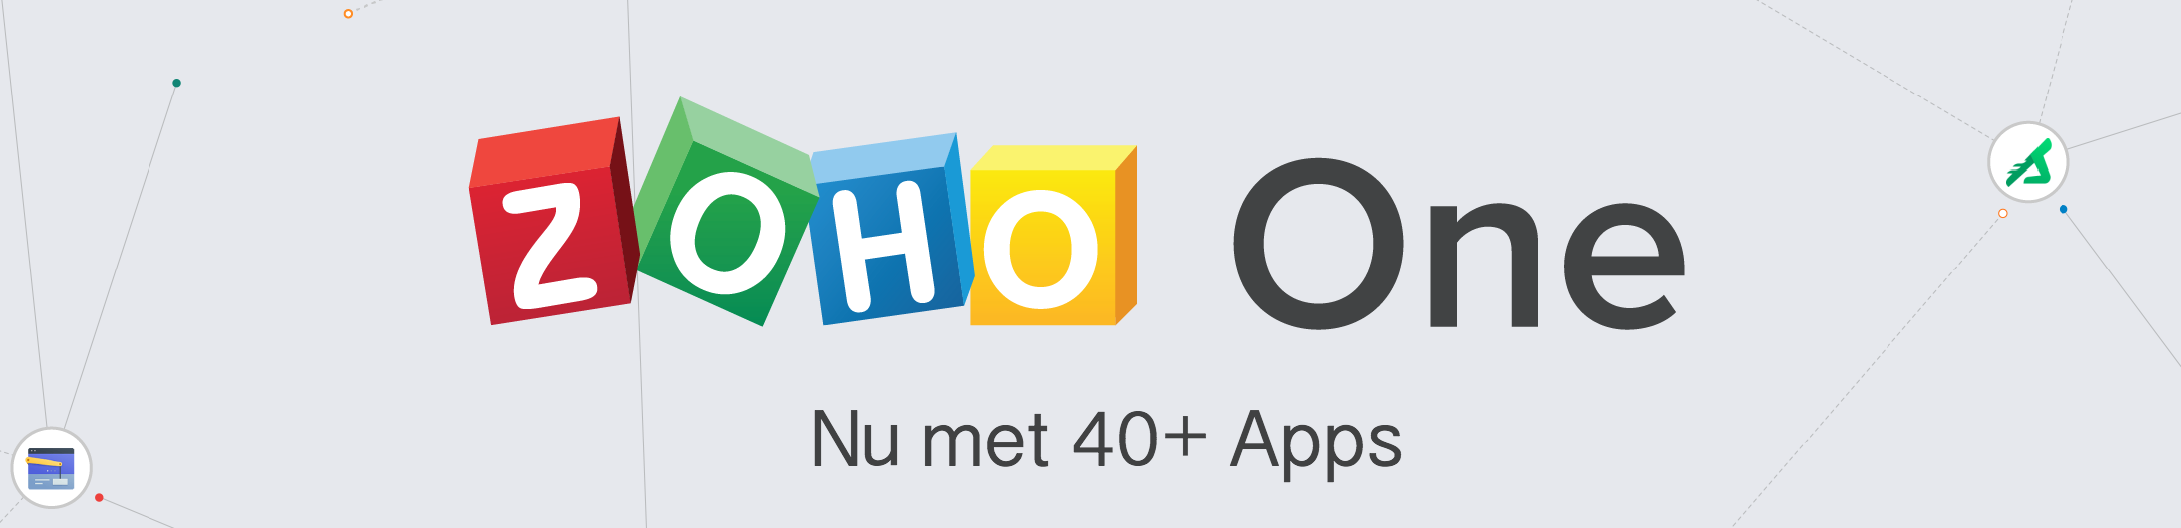 Zoho One met 40+ apps